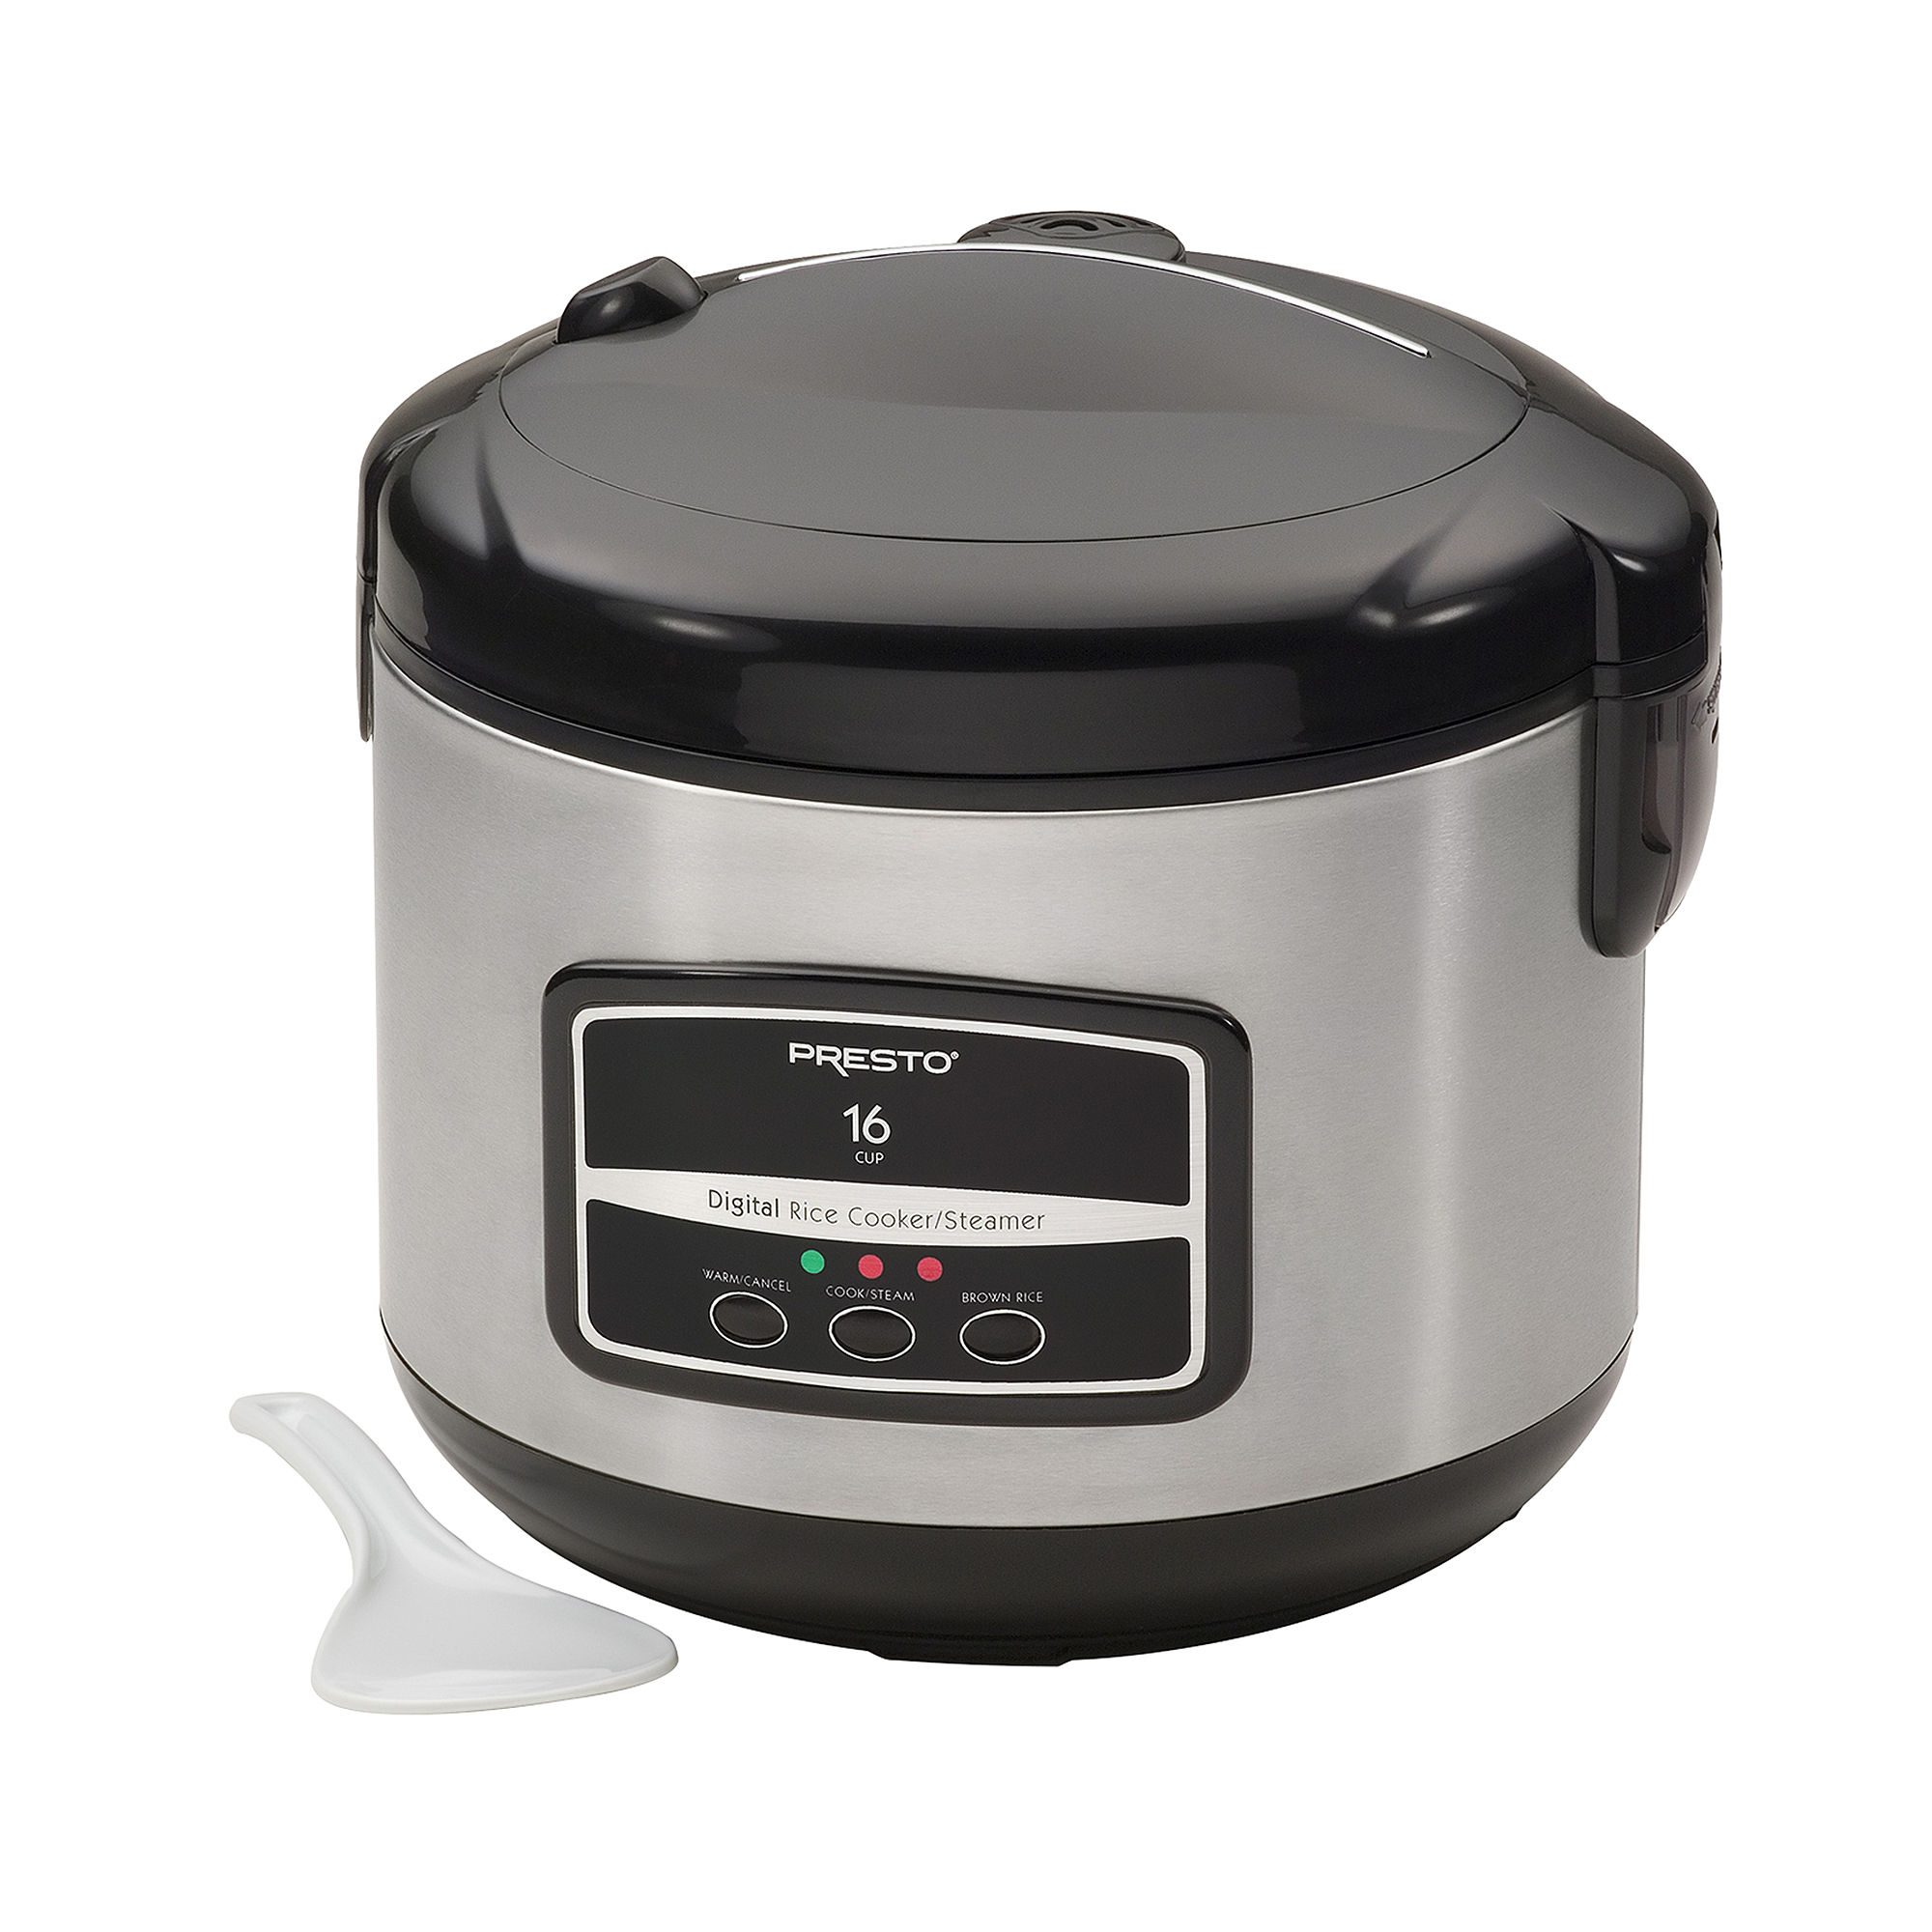 Presto 16-Cup Digital Rice Cooker & Steamer